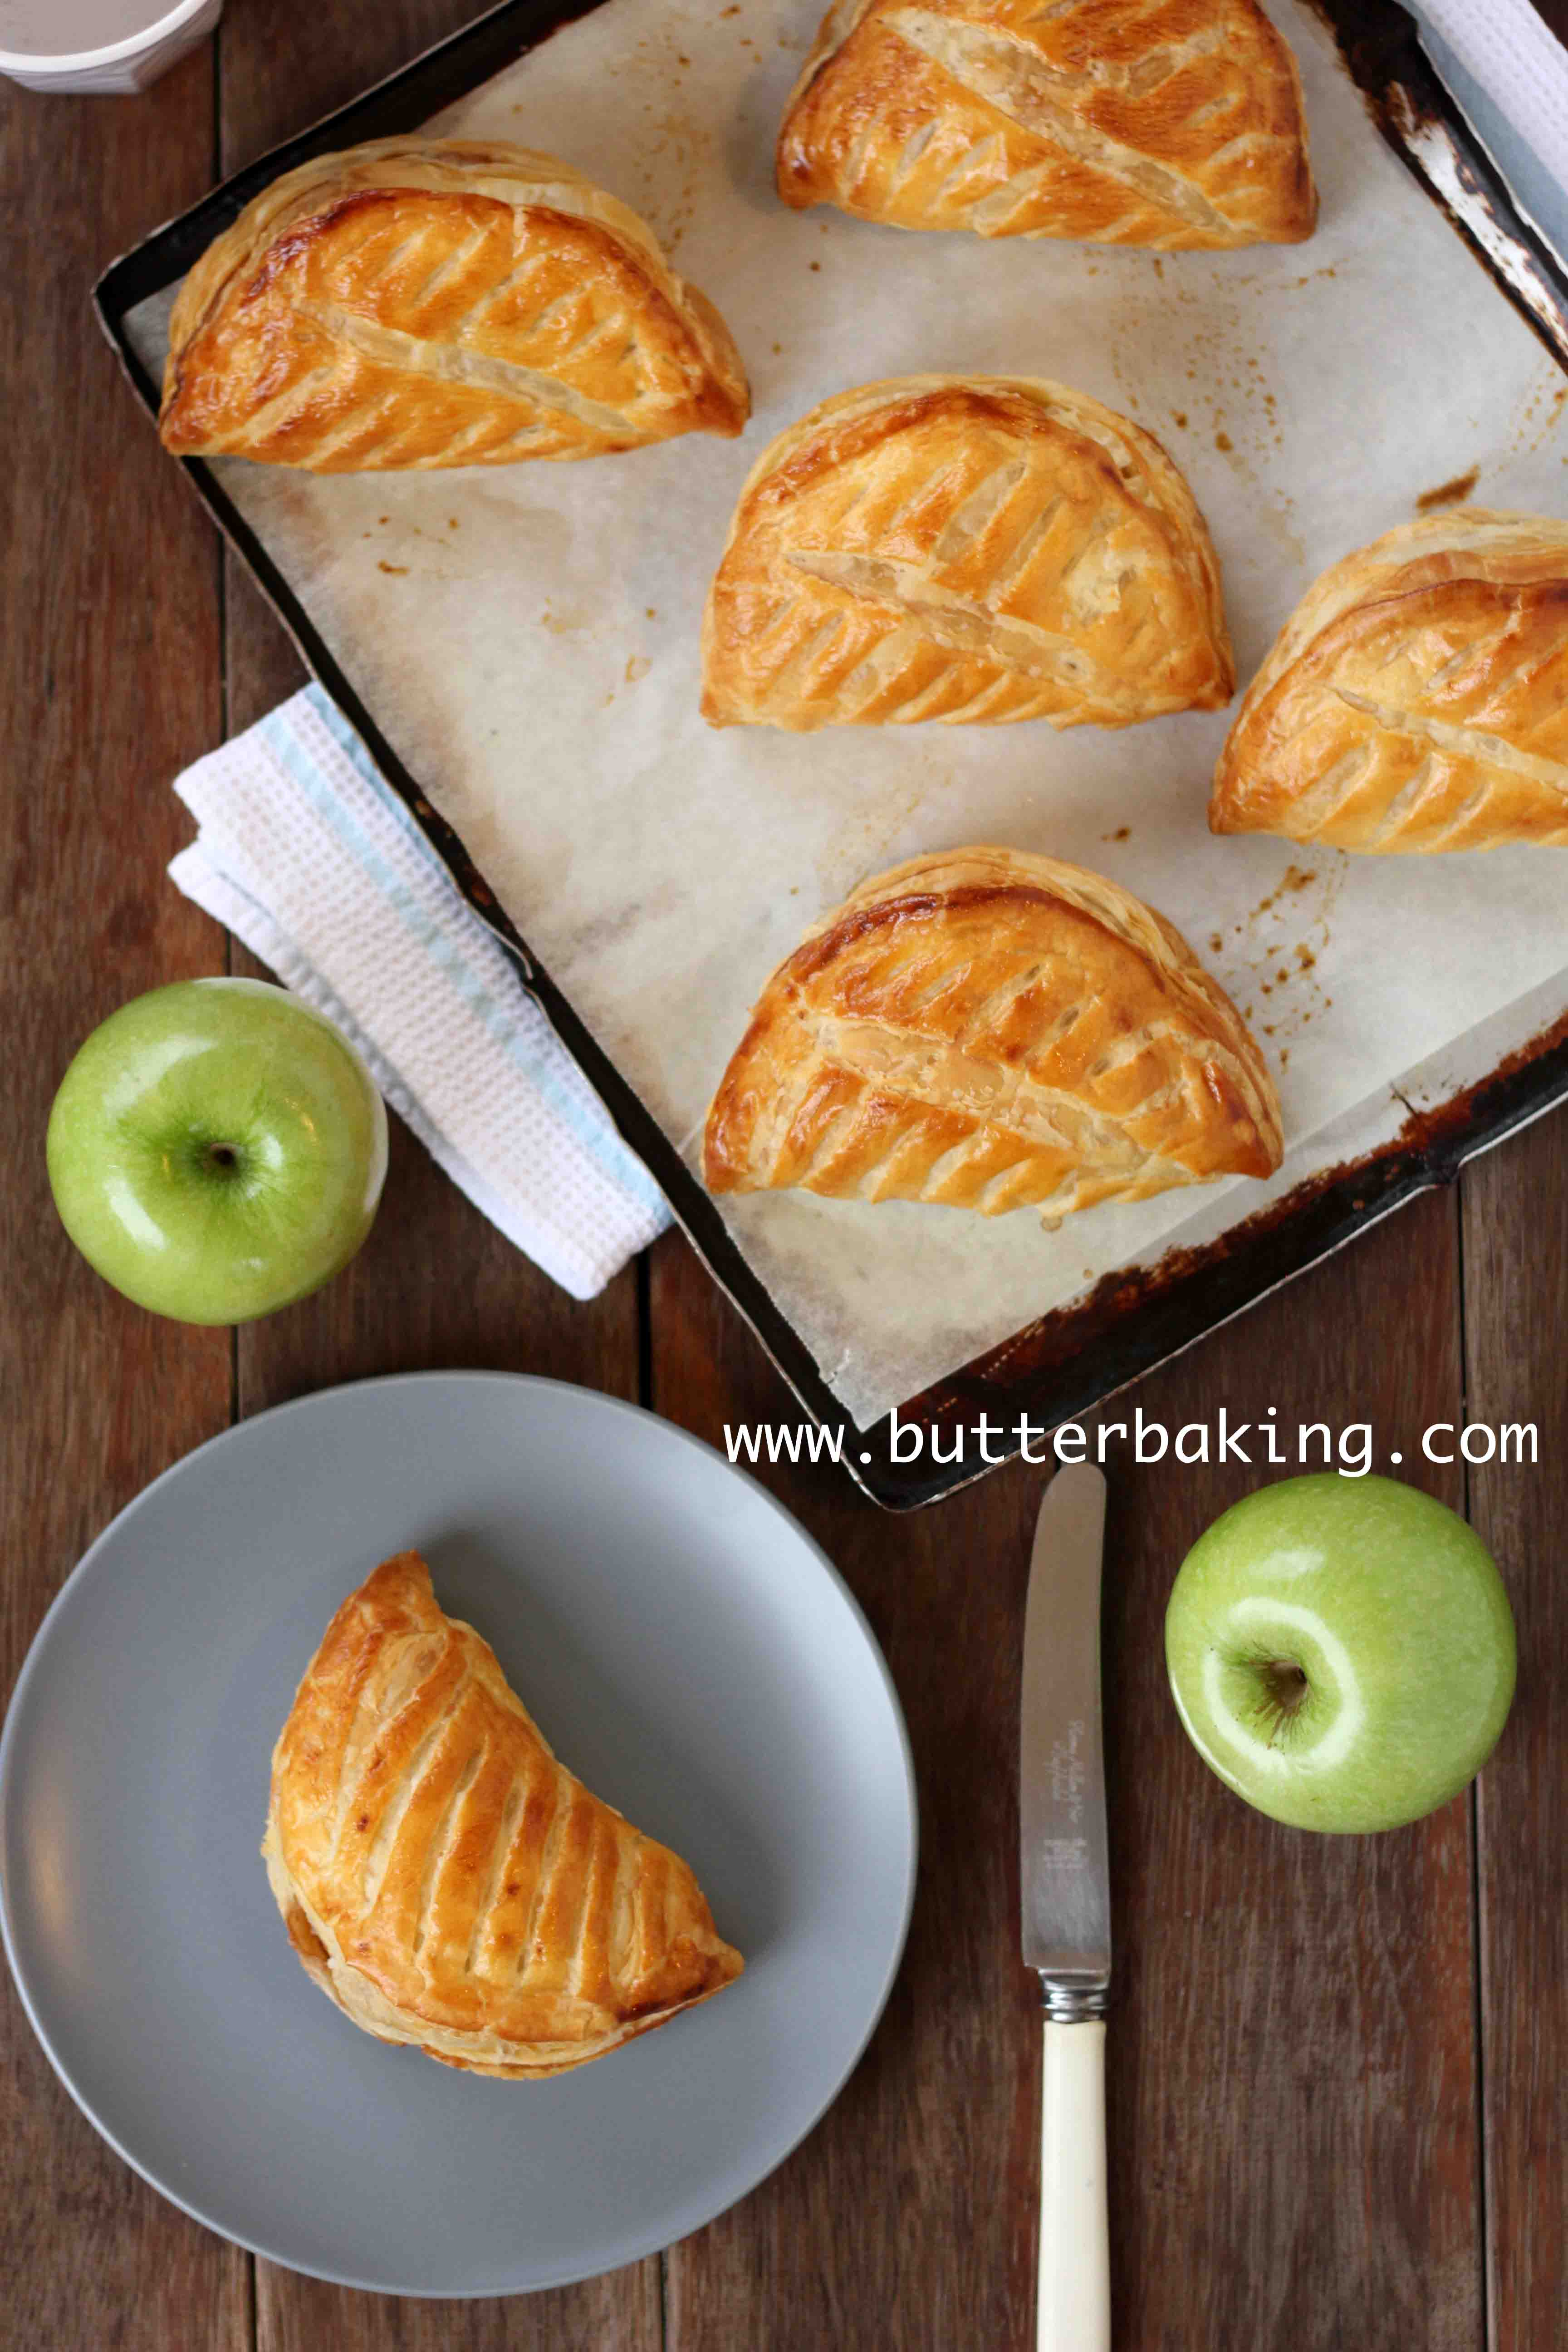 ... apple turnovers recipe yummly french apple turnovers chaussons aux